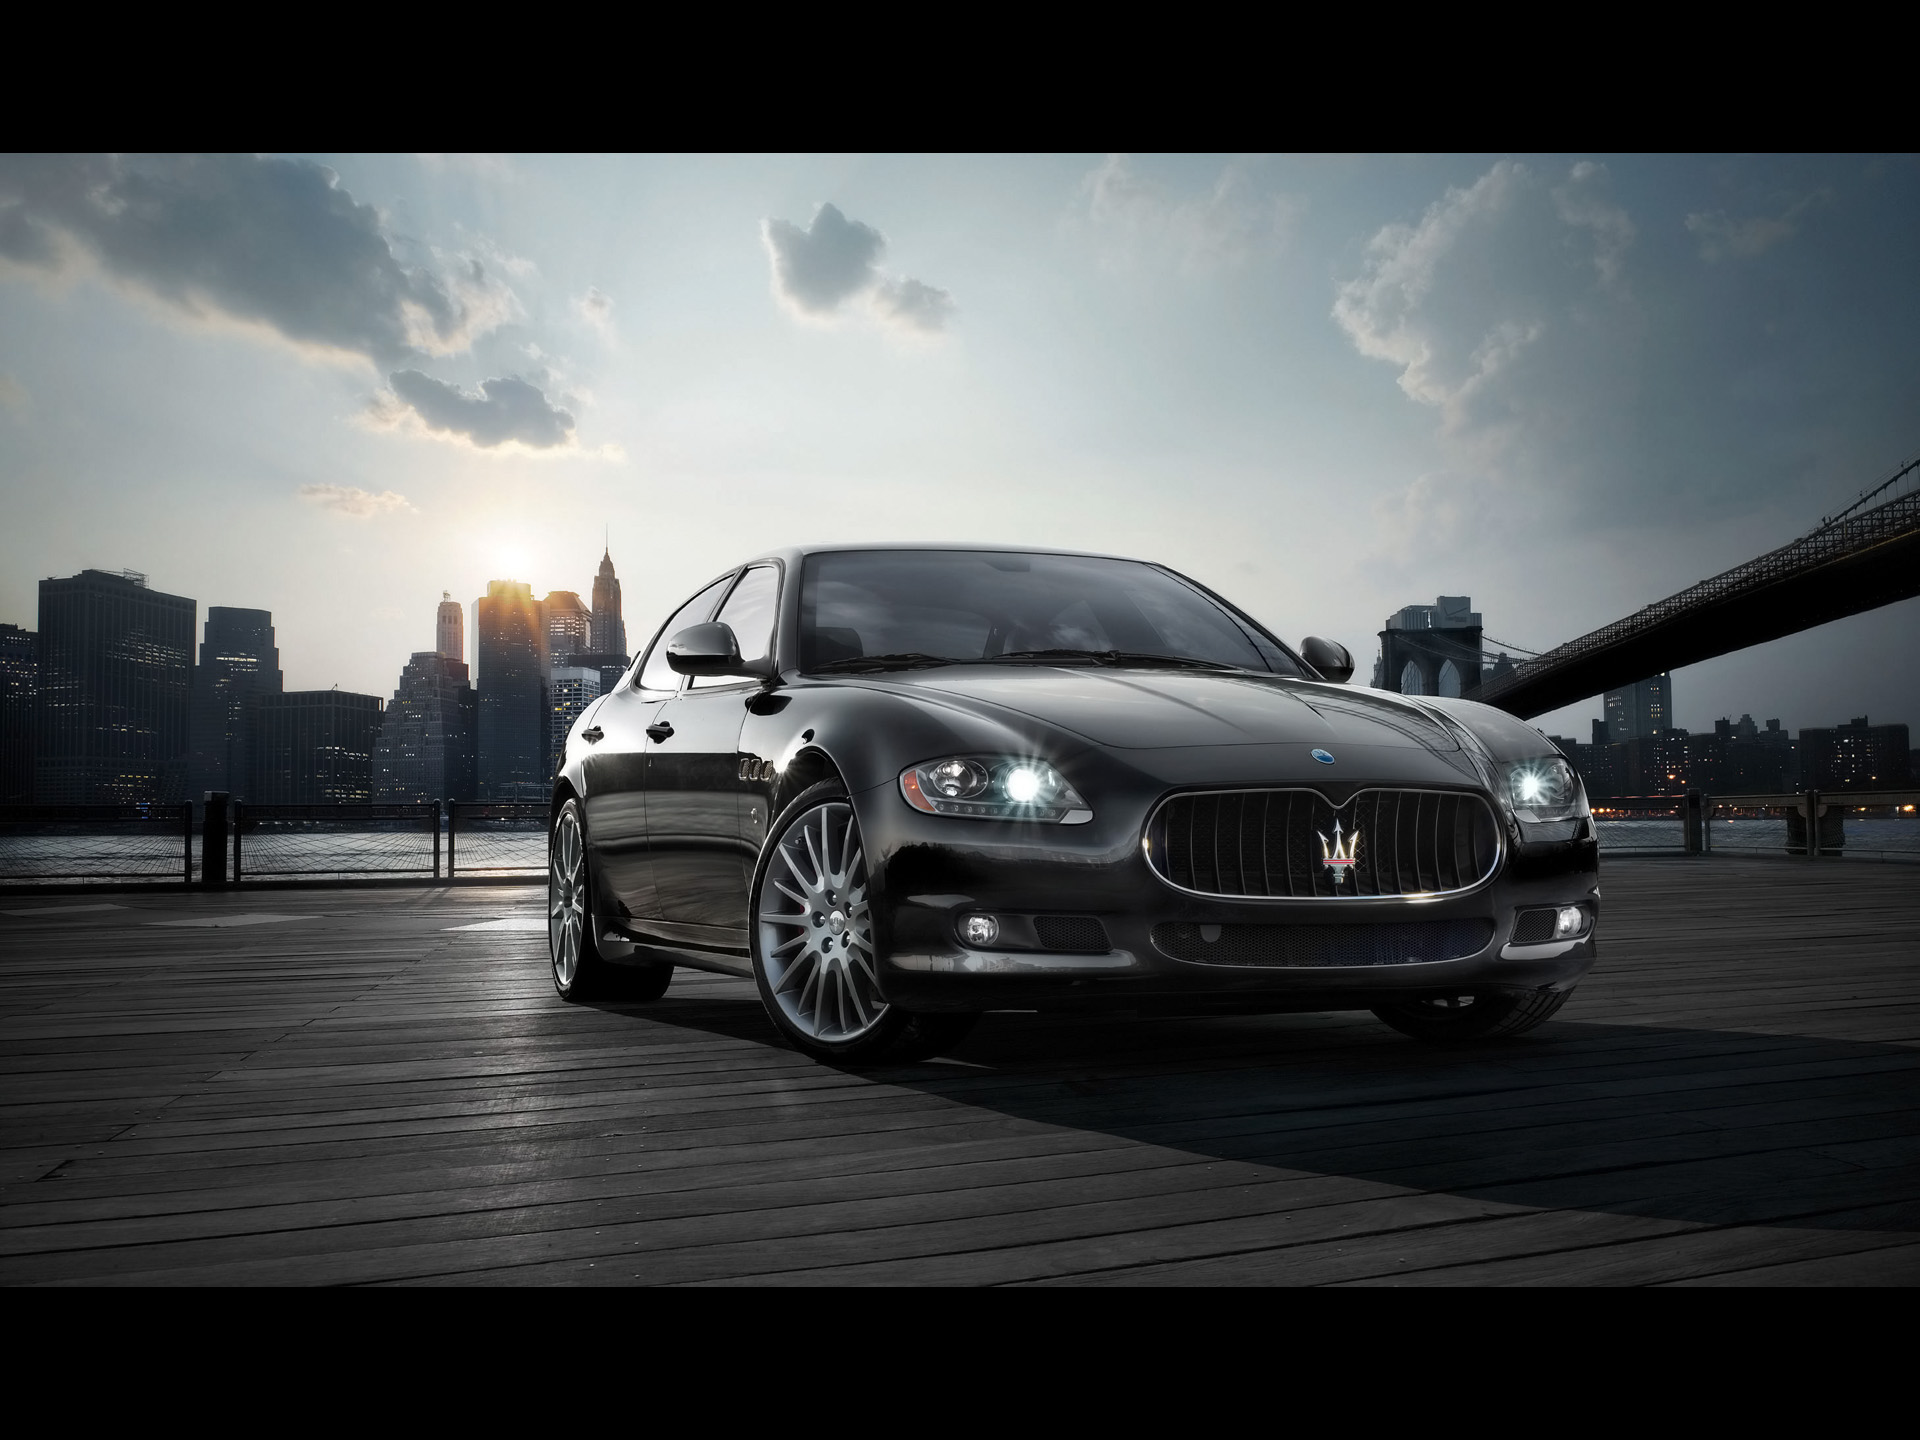 Gt Sport Wallpaper Iphone: Maserati Quattroporte Sport GT S Wallpapers